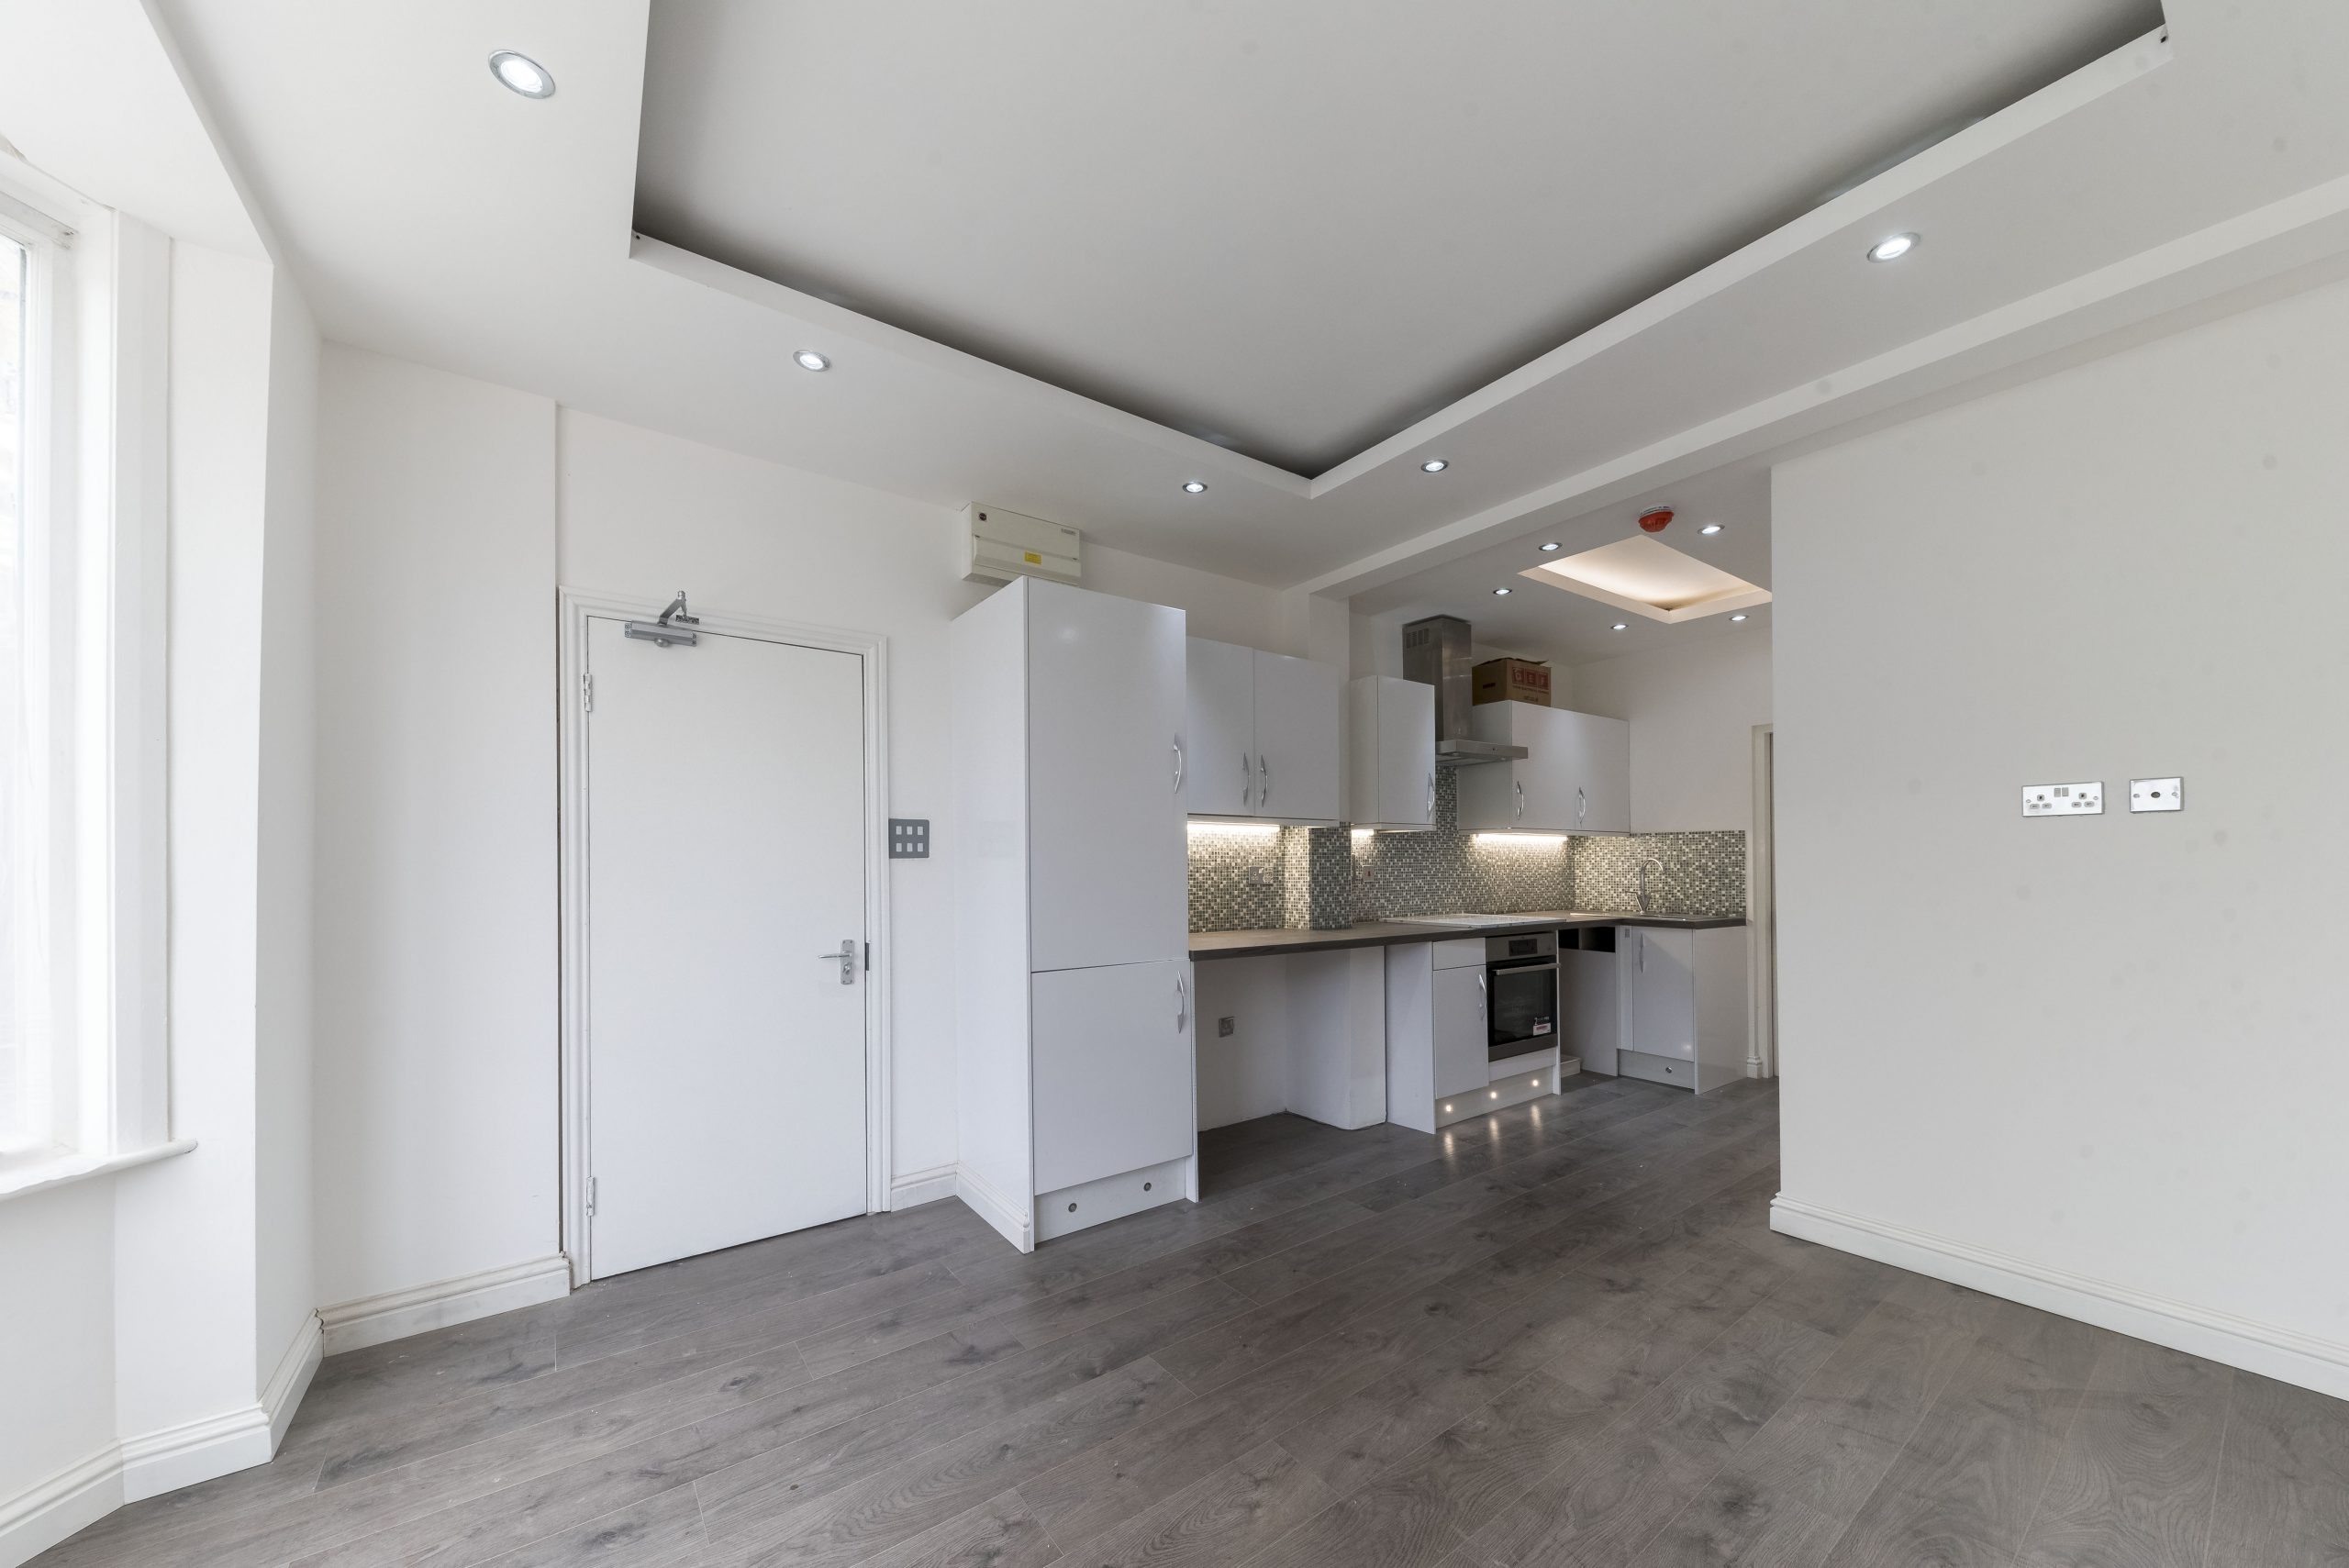 Immaculate 6 Bed Professional HMO London For Sale